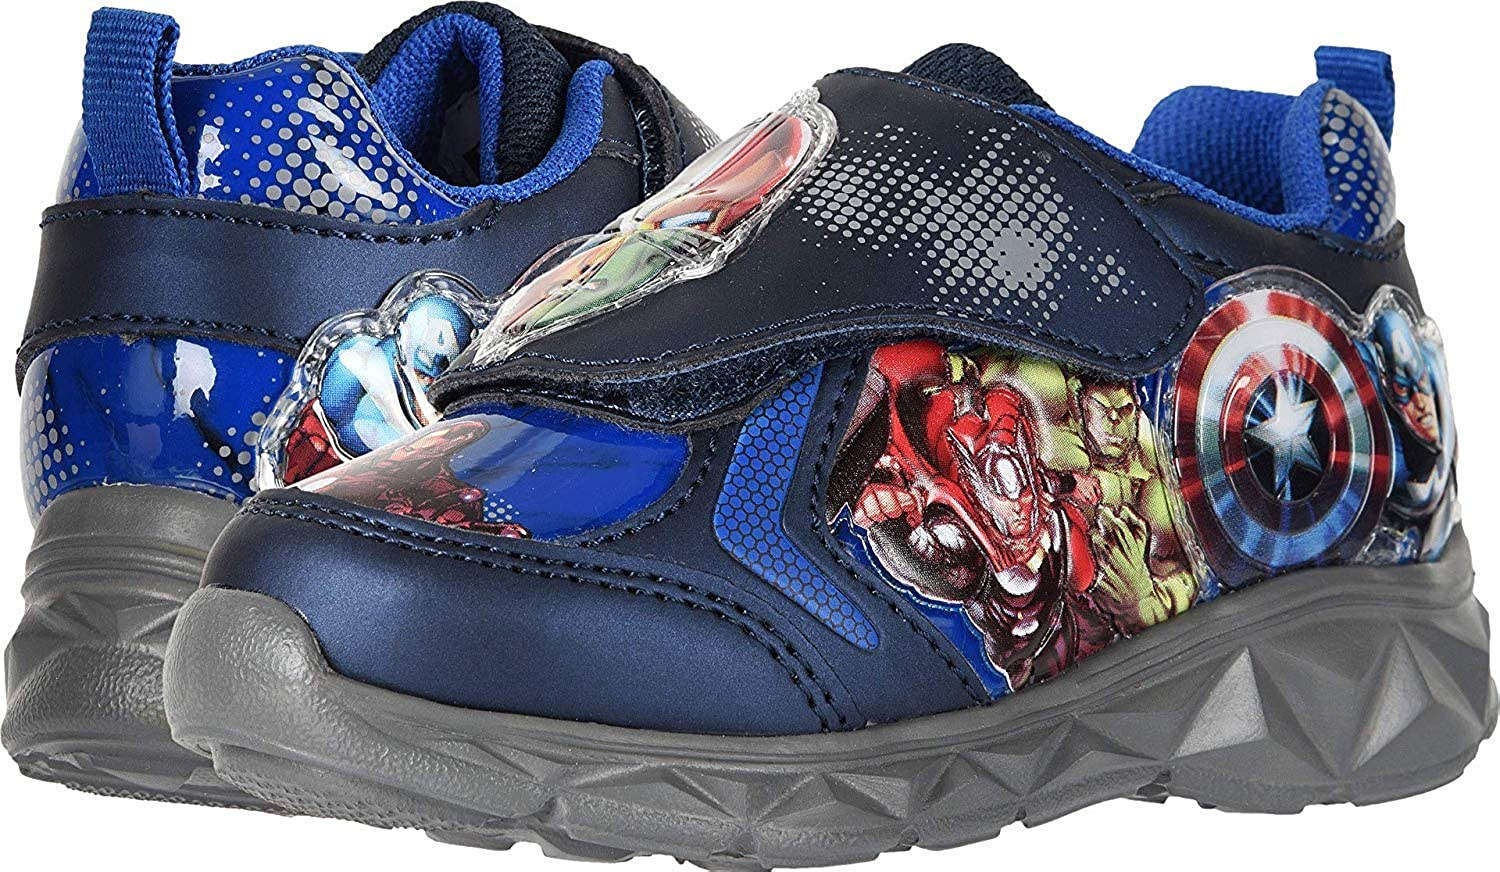 Marvel Avengers Lighted Athletic Shoes Blue Toddler/Little Kid Favorite Characters